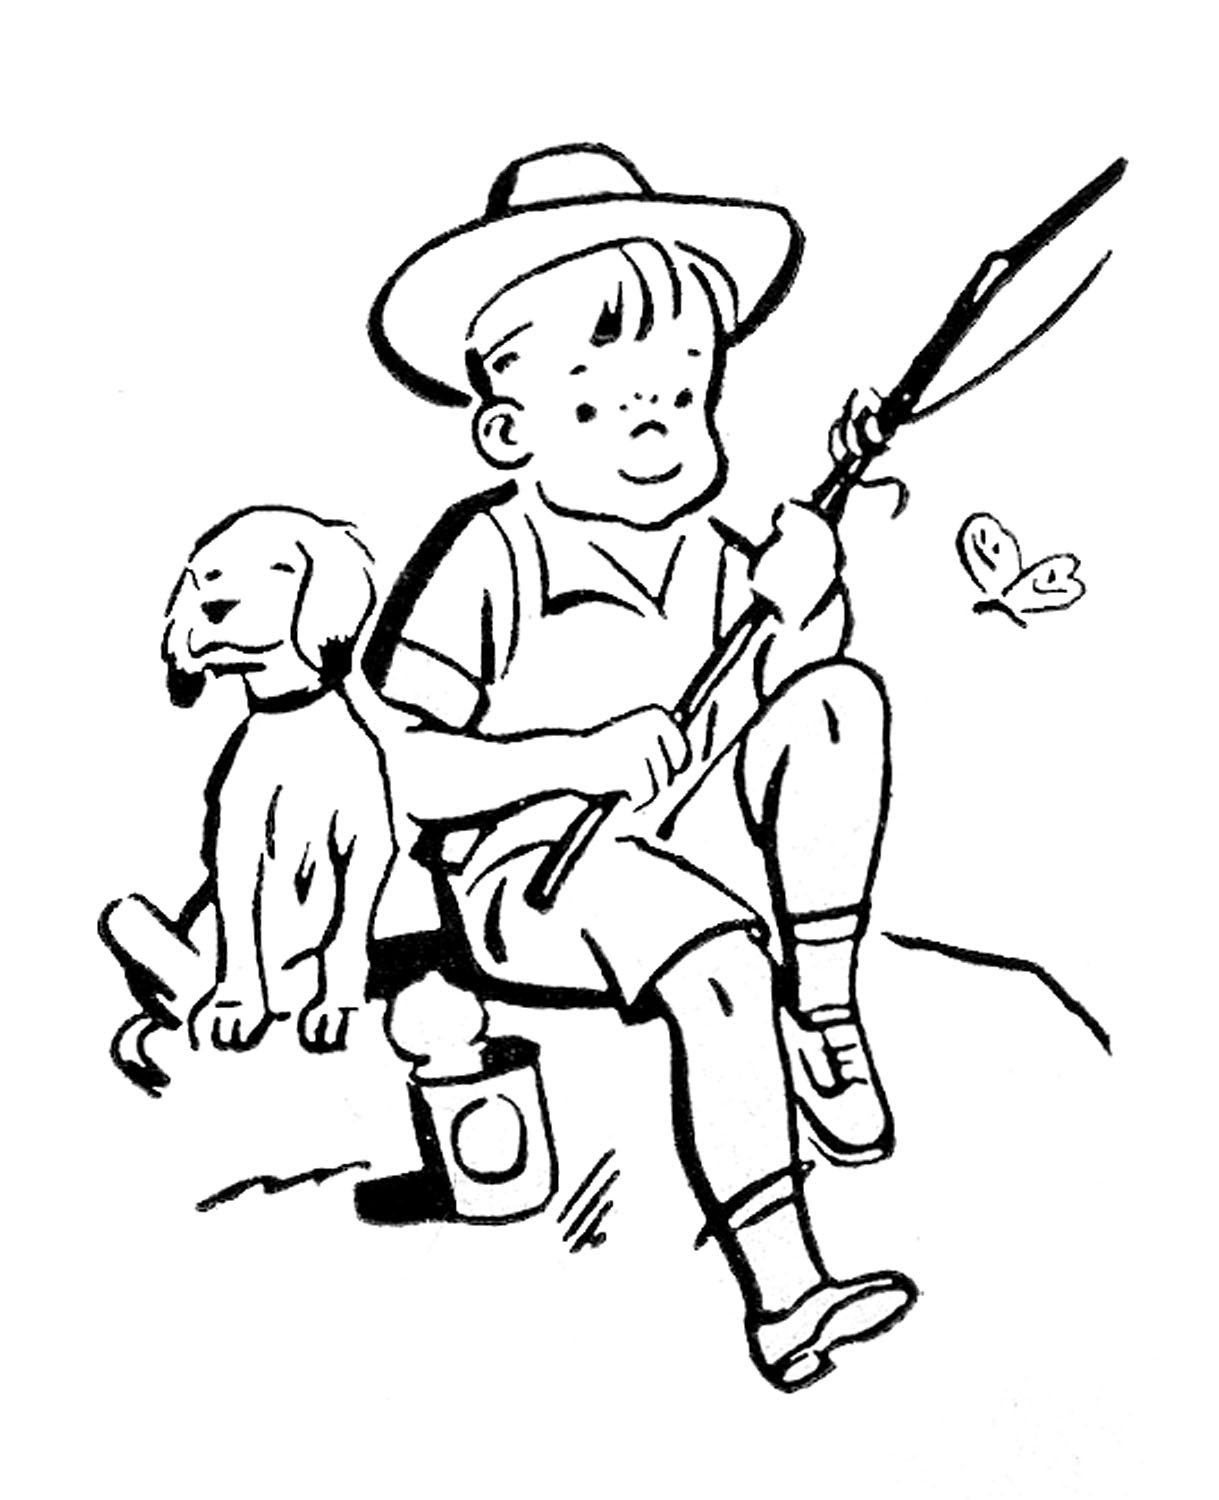 Vegetable garden kids drawing - Boy 20fishing 20clipart